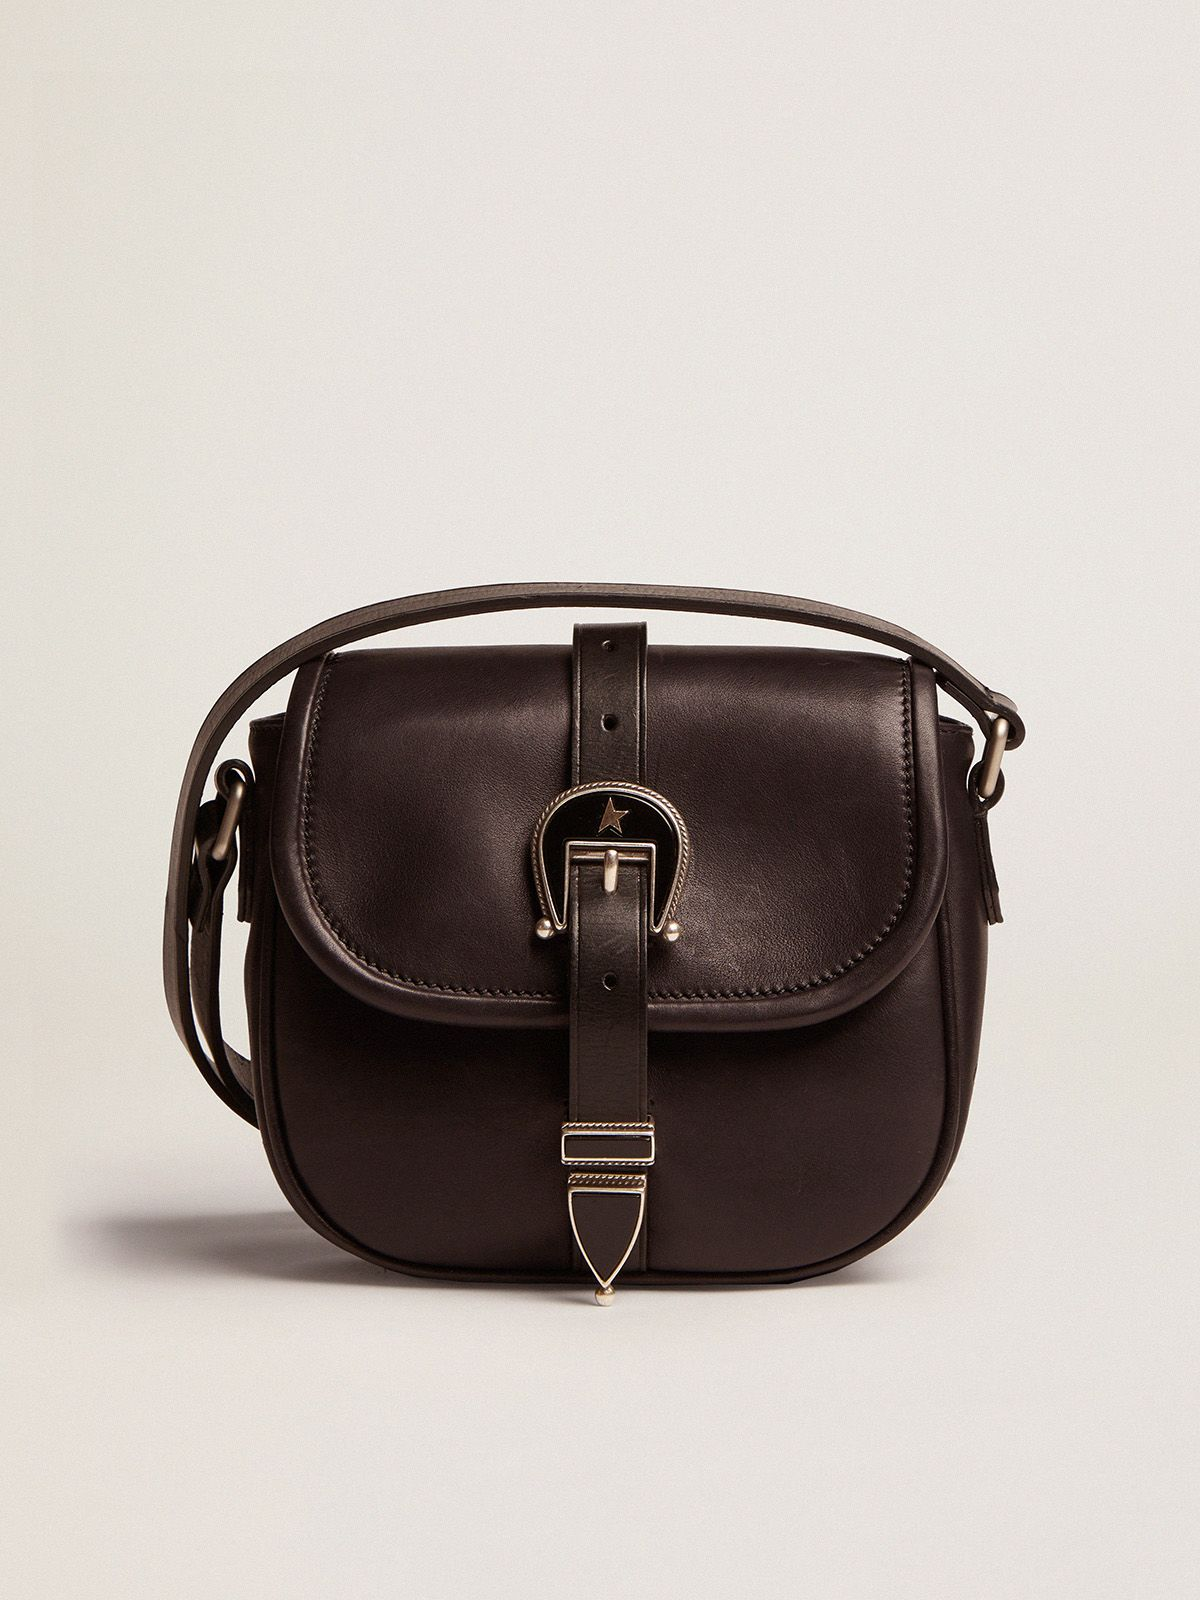 Borsa Rodeo Bag small nera in pelle